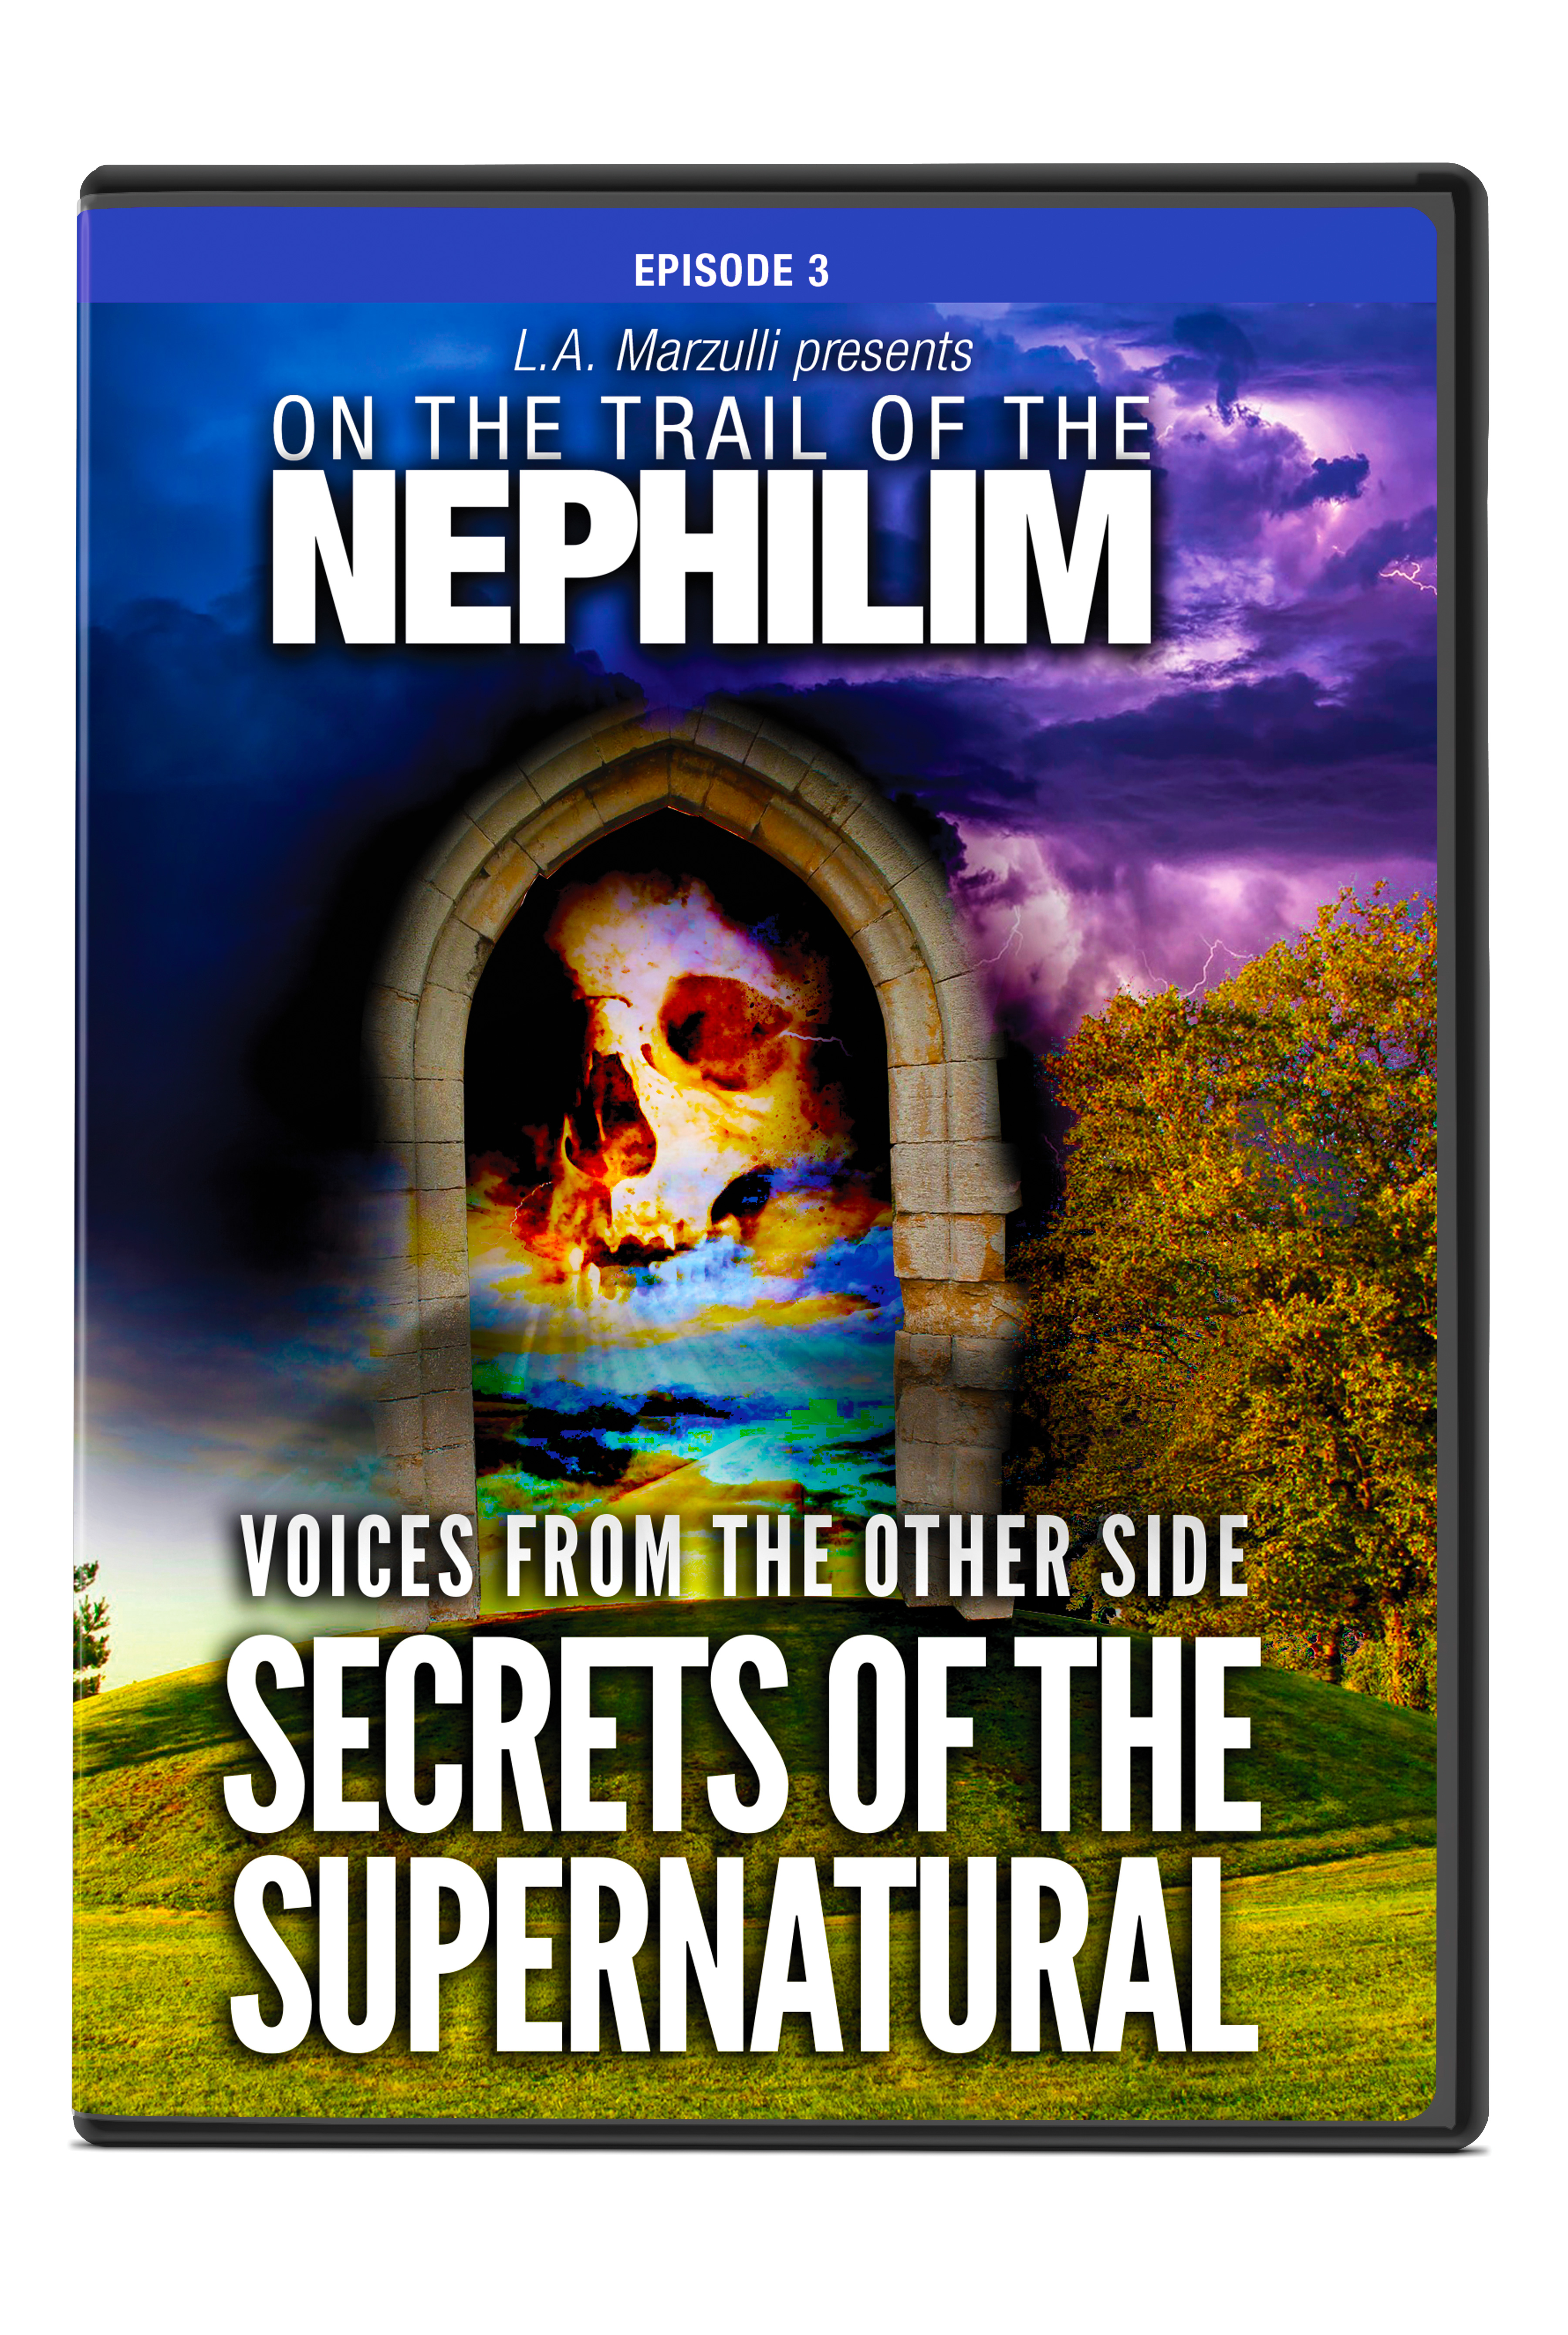 On the Trail of the Nephilim Episode 3